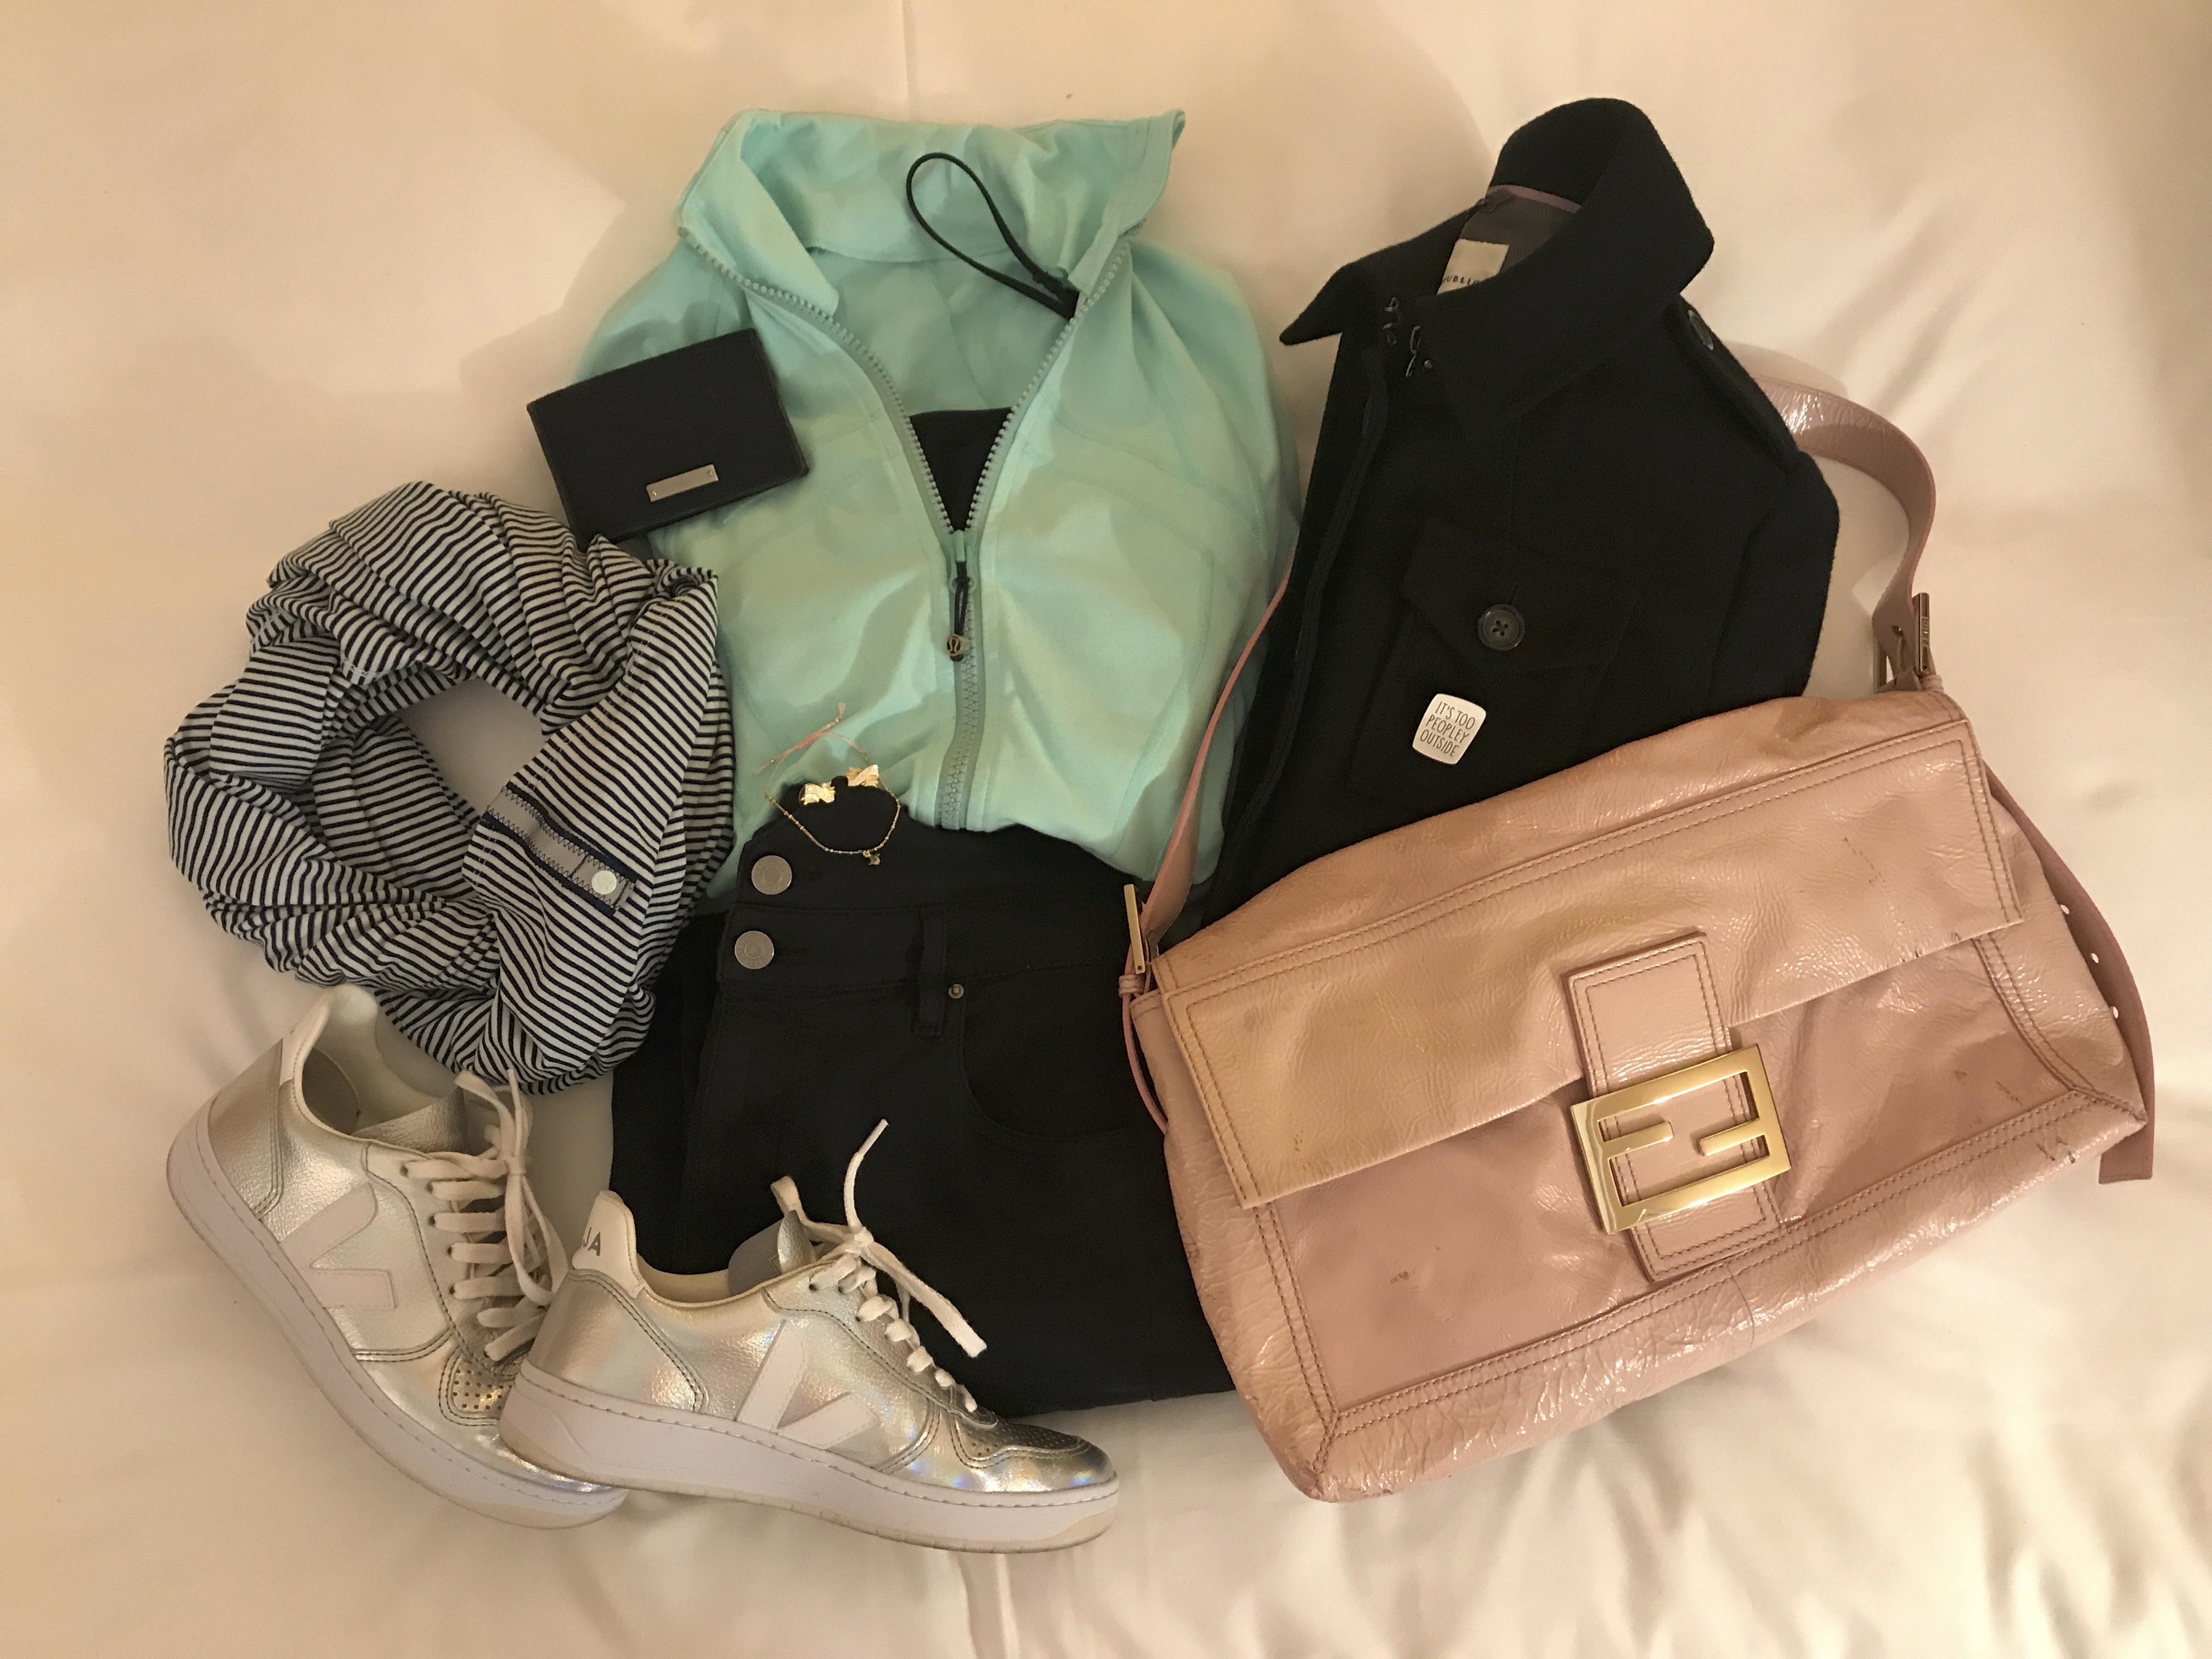 A photo of a Lululemon vinyasa reversible Rulu striped scarf (in hyper stripe sea mist and hero blue), Veja V-10 unicorn sneakers, a large pink Fendi baguette bag, black Isabel Marant high waist denim jeans, a plain black tank top, a black Gucci wallet and a mint forme jacket from Lululemon.